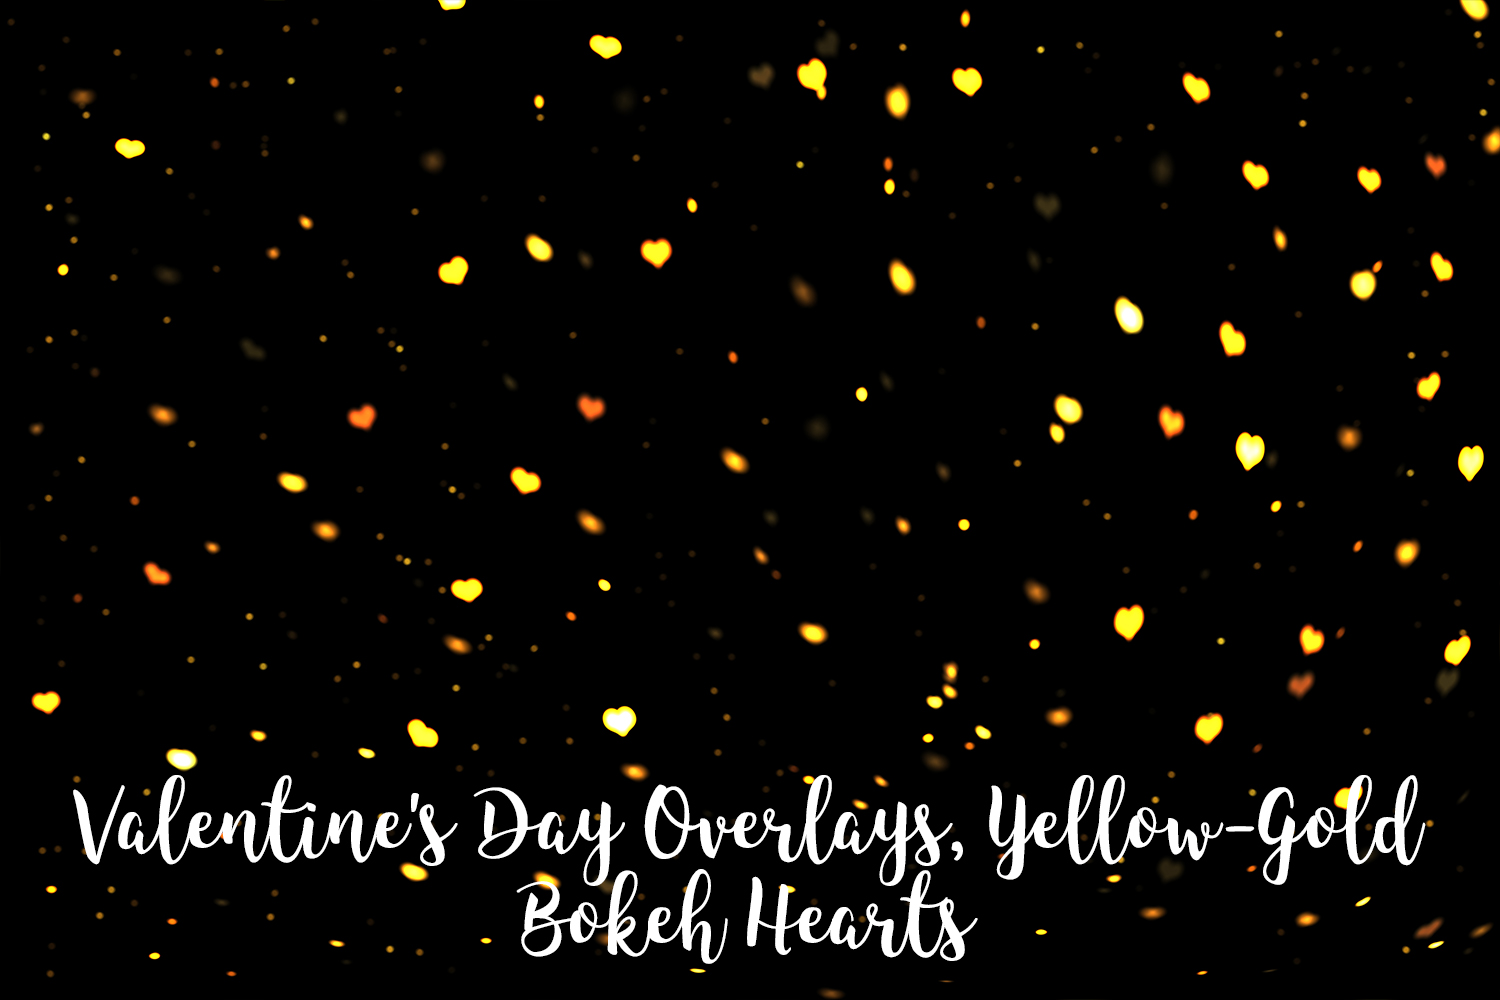 Valentine's Day Overlays, Yellow Gold Hearts Bokeh Overlays example image 6